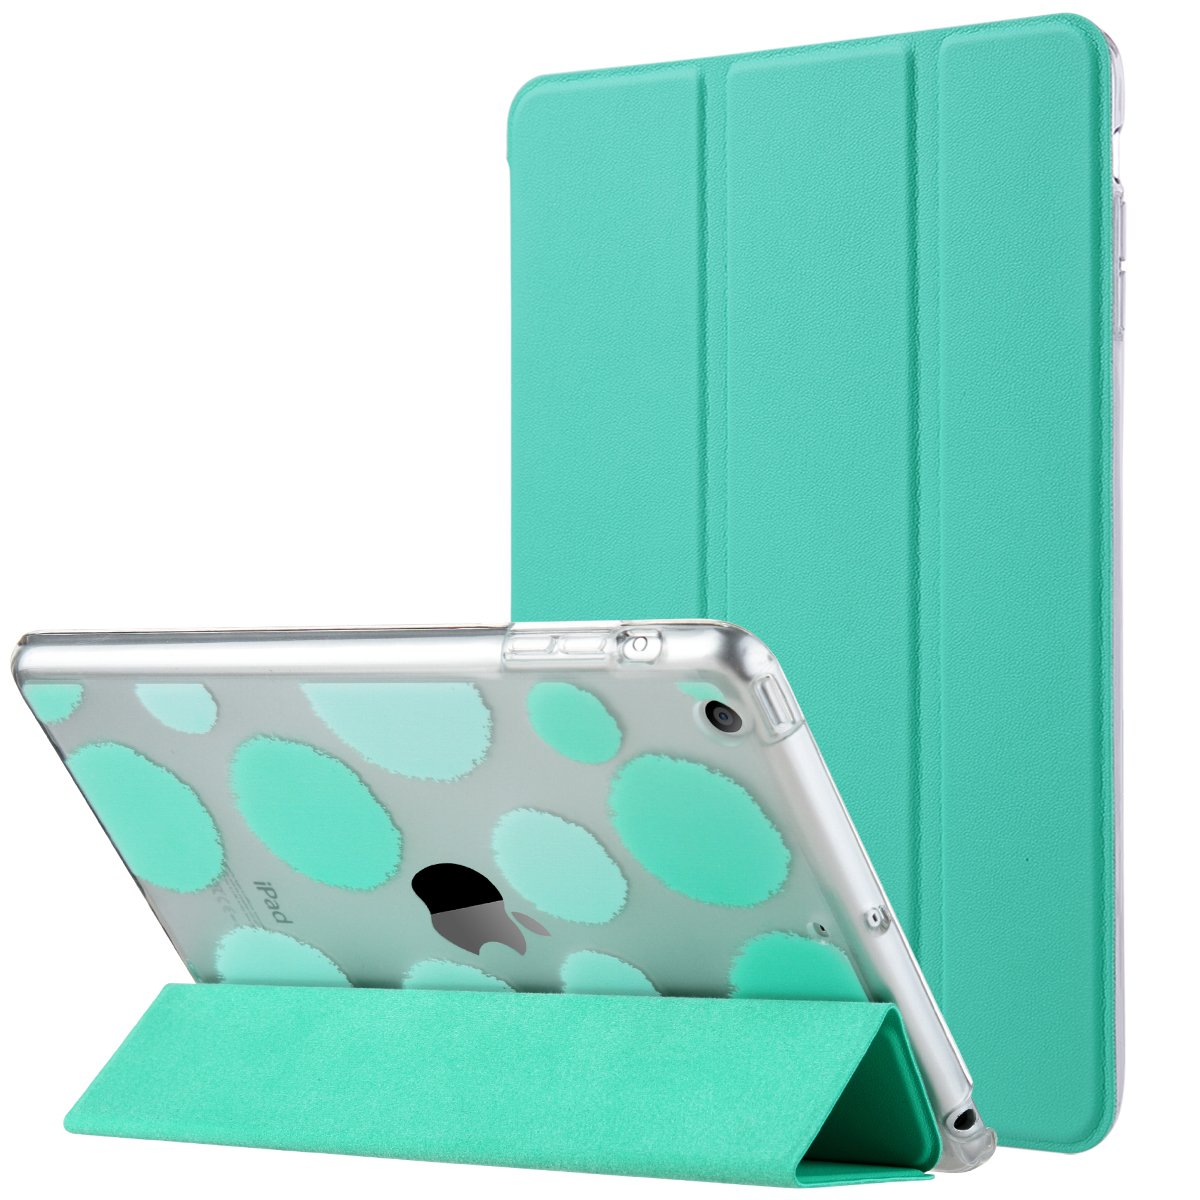 iPad Mini 3 Case,iPad Mini 2 Case,iPad Mini Case,ULAK Ultra Slim Fit Bumper Smart Case Stand for Apple iPad Mini 1/2/3 Colorful Clear Back Cover Lightweight with Auto Sleep/Wake Function,Mint Green